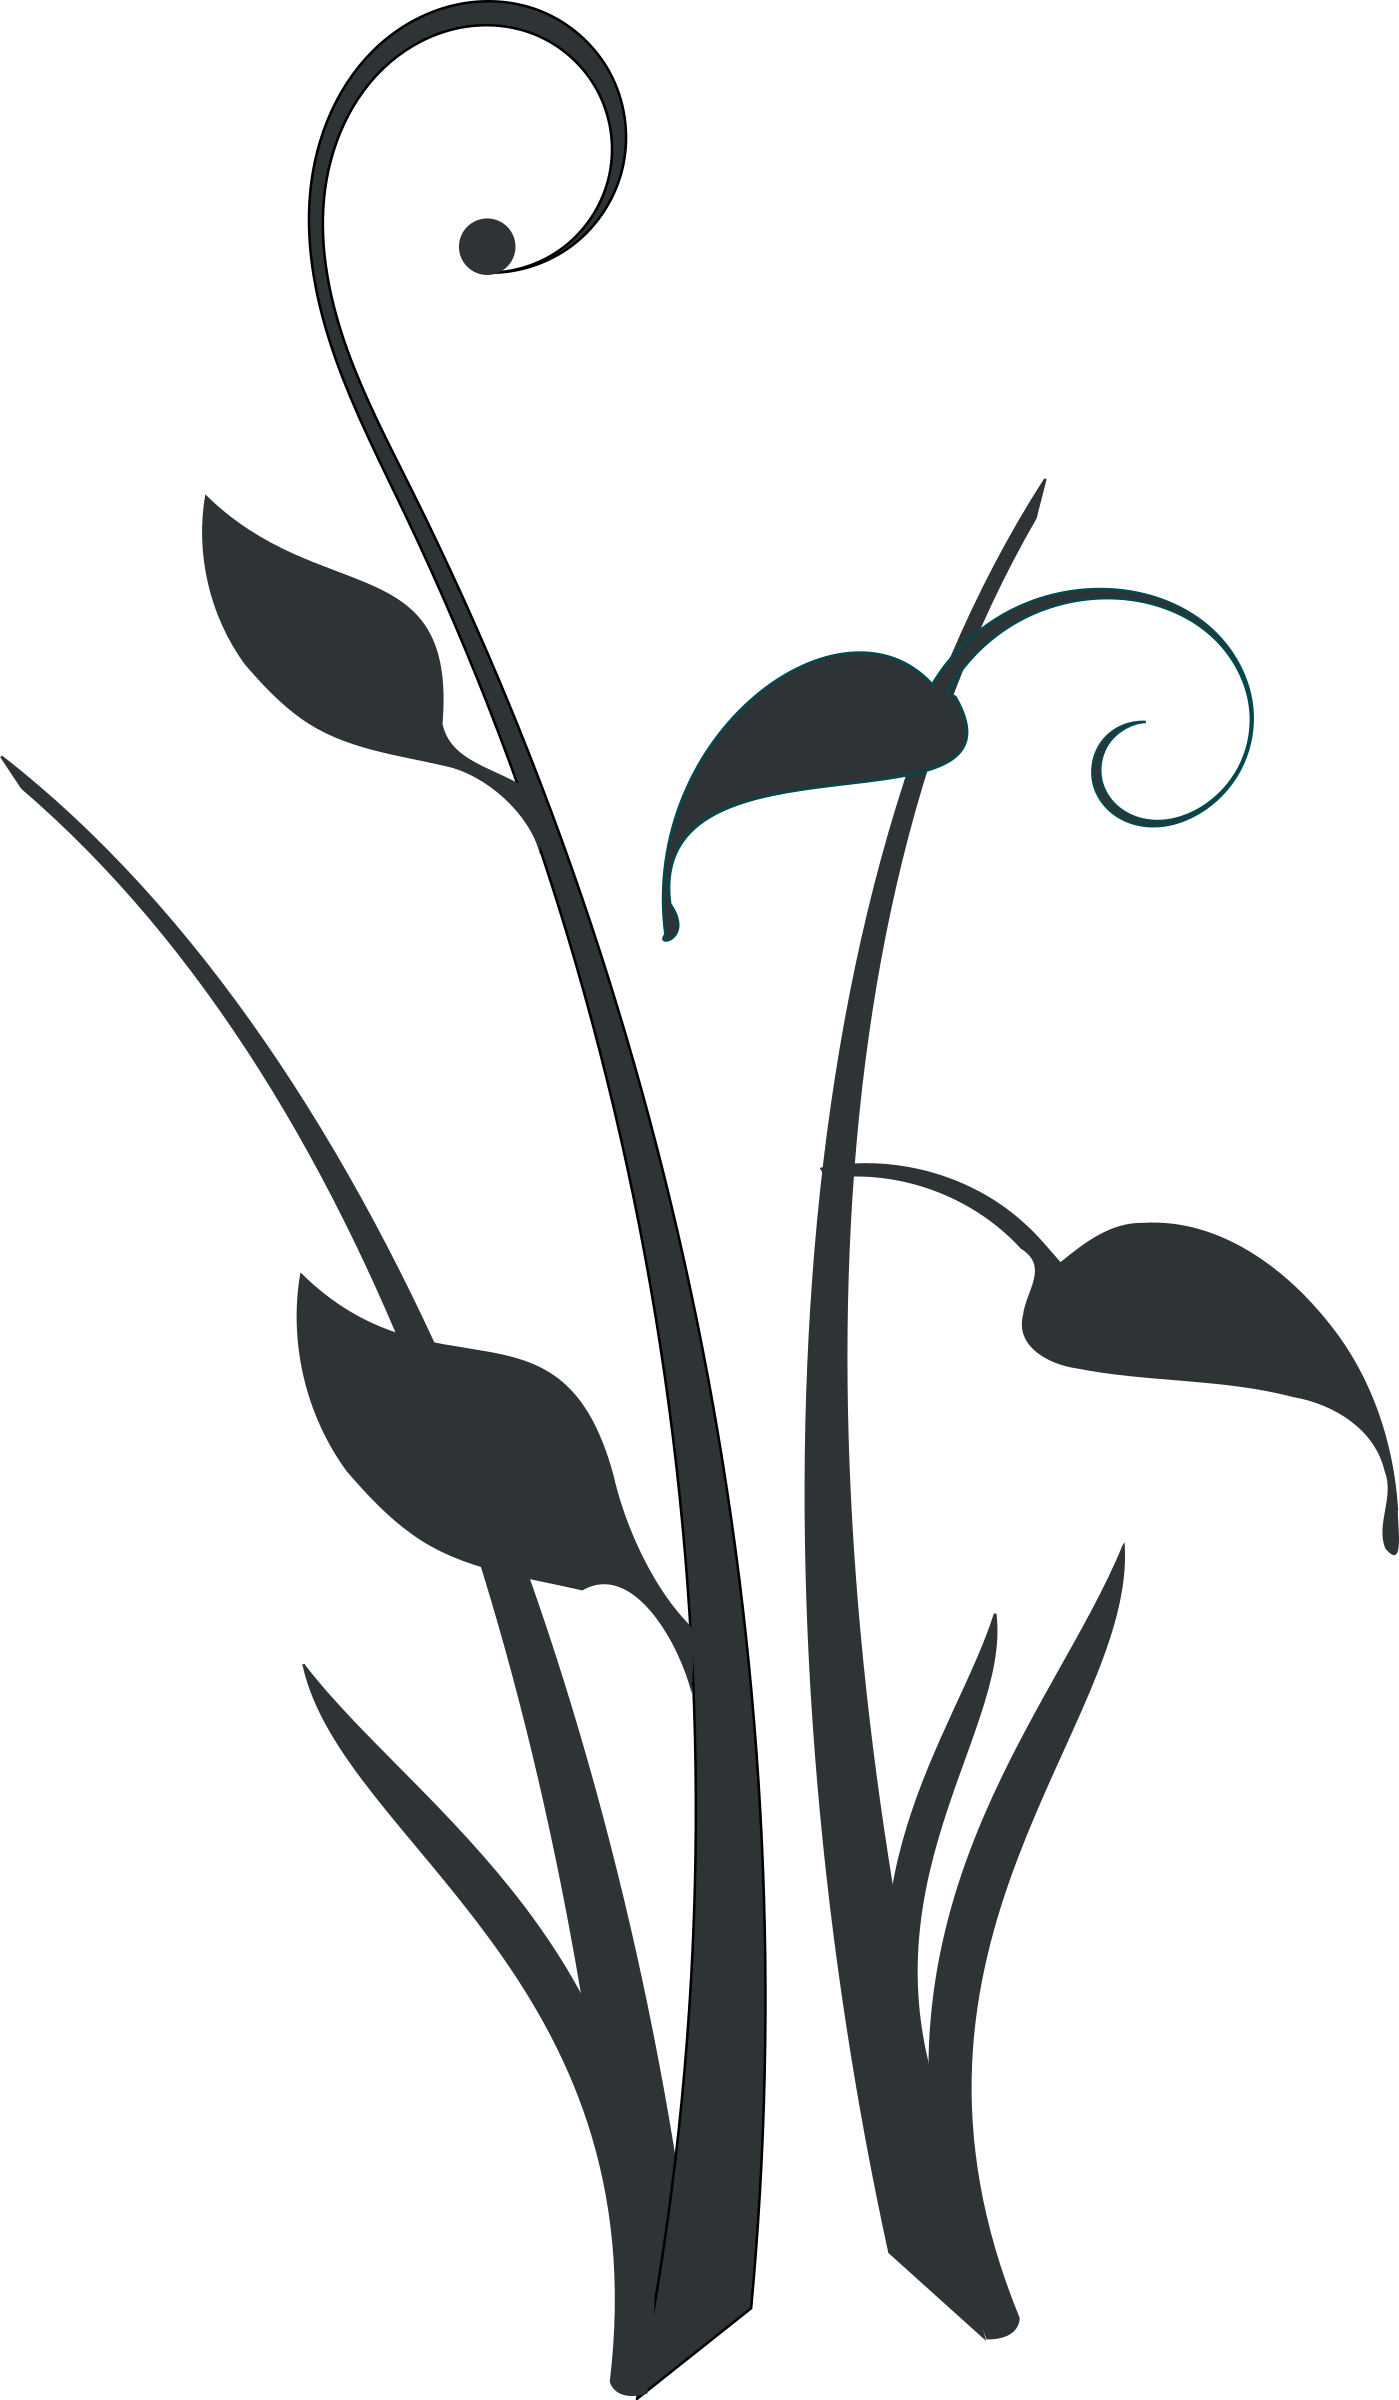 Plant Clipart Black And White   Free download best Plant ...